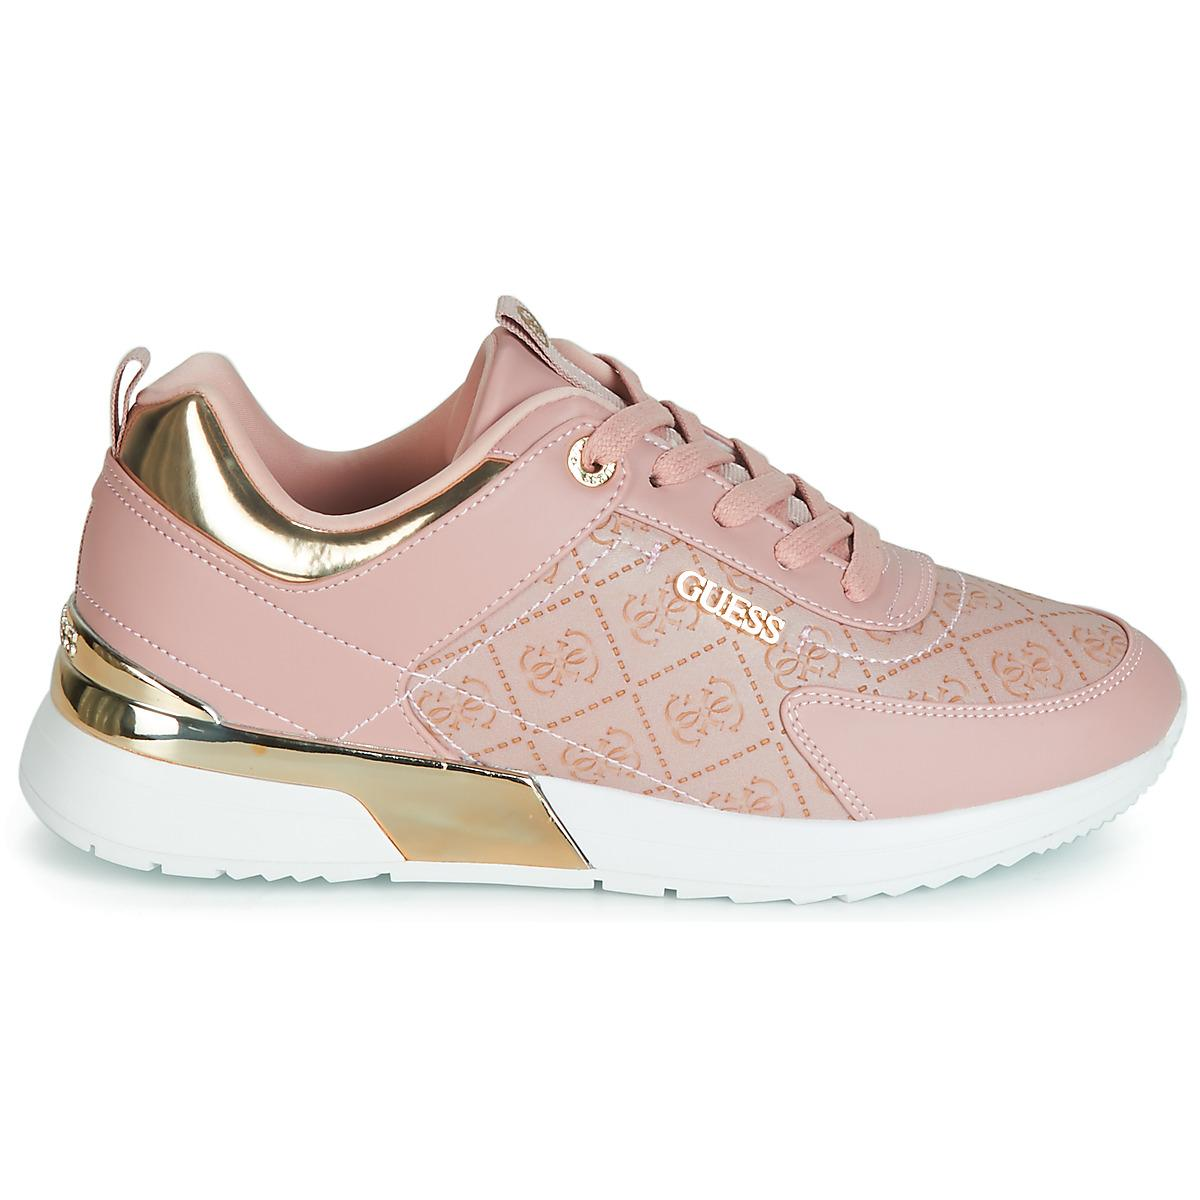 9bd6349c2b9 Guess Marlyn Shoes (trainers) in Pink - Lyst